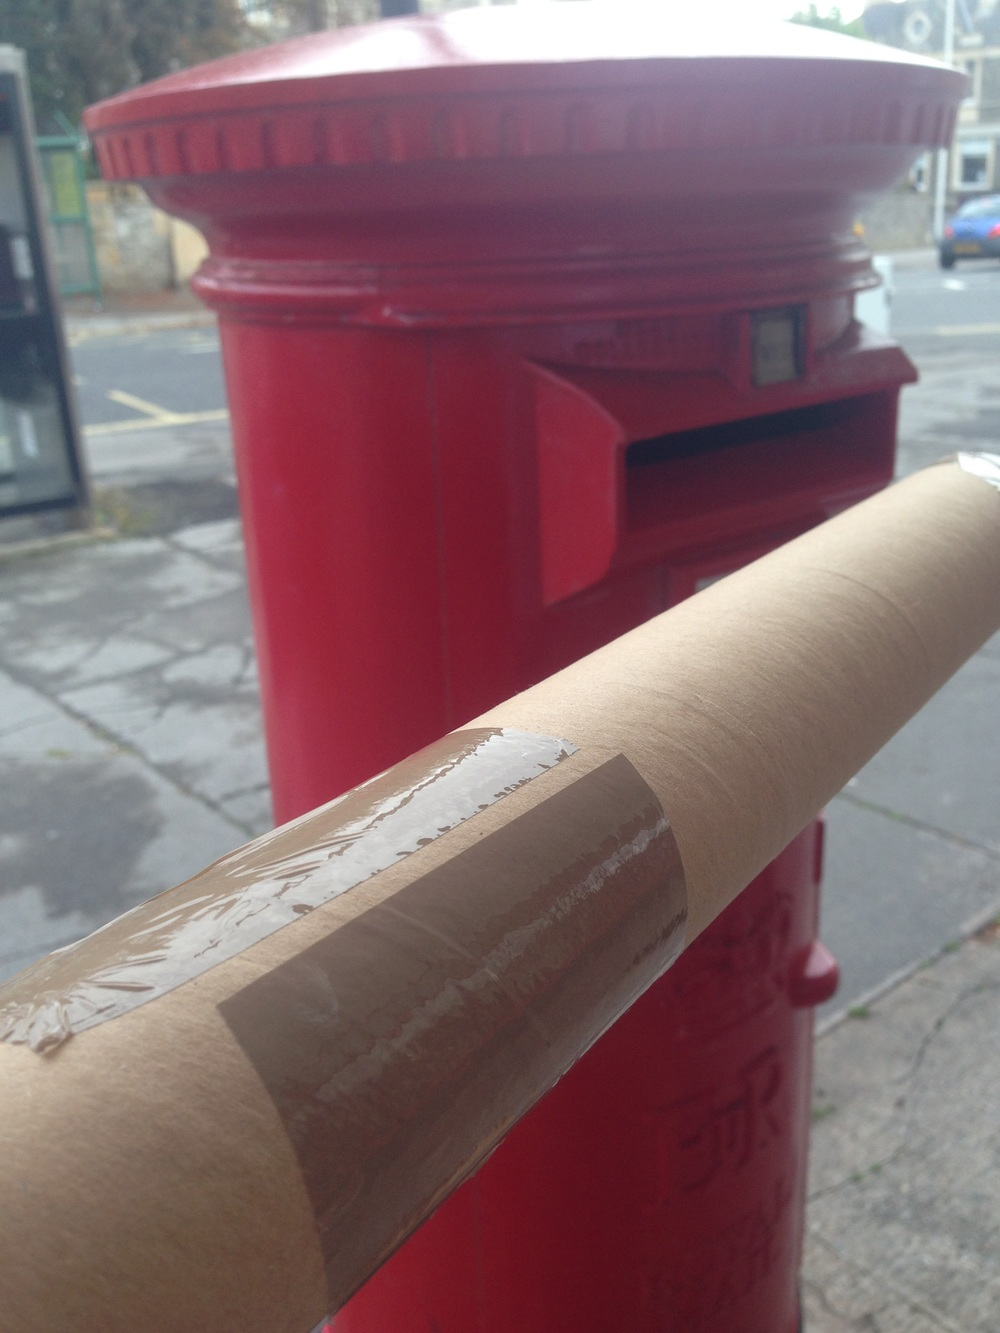 Call of the Post Box